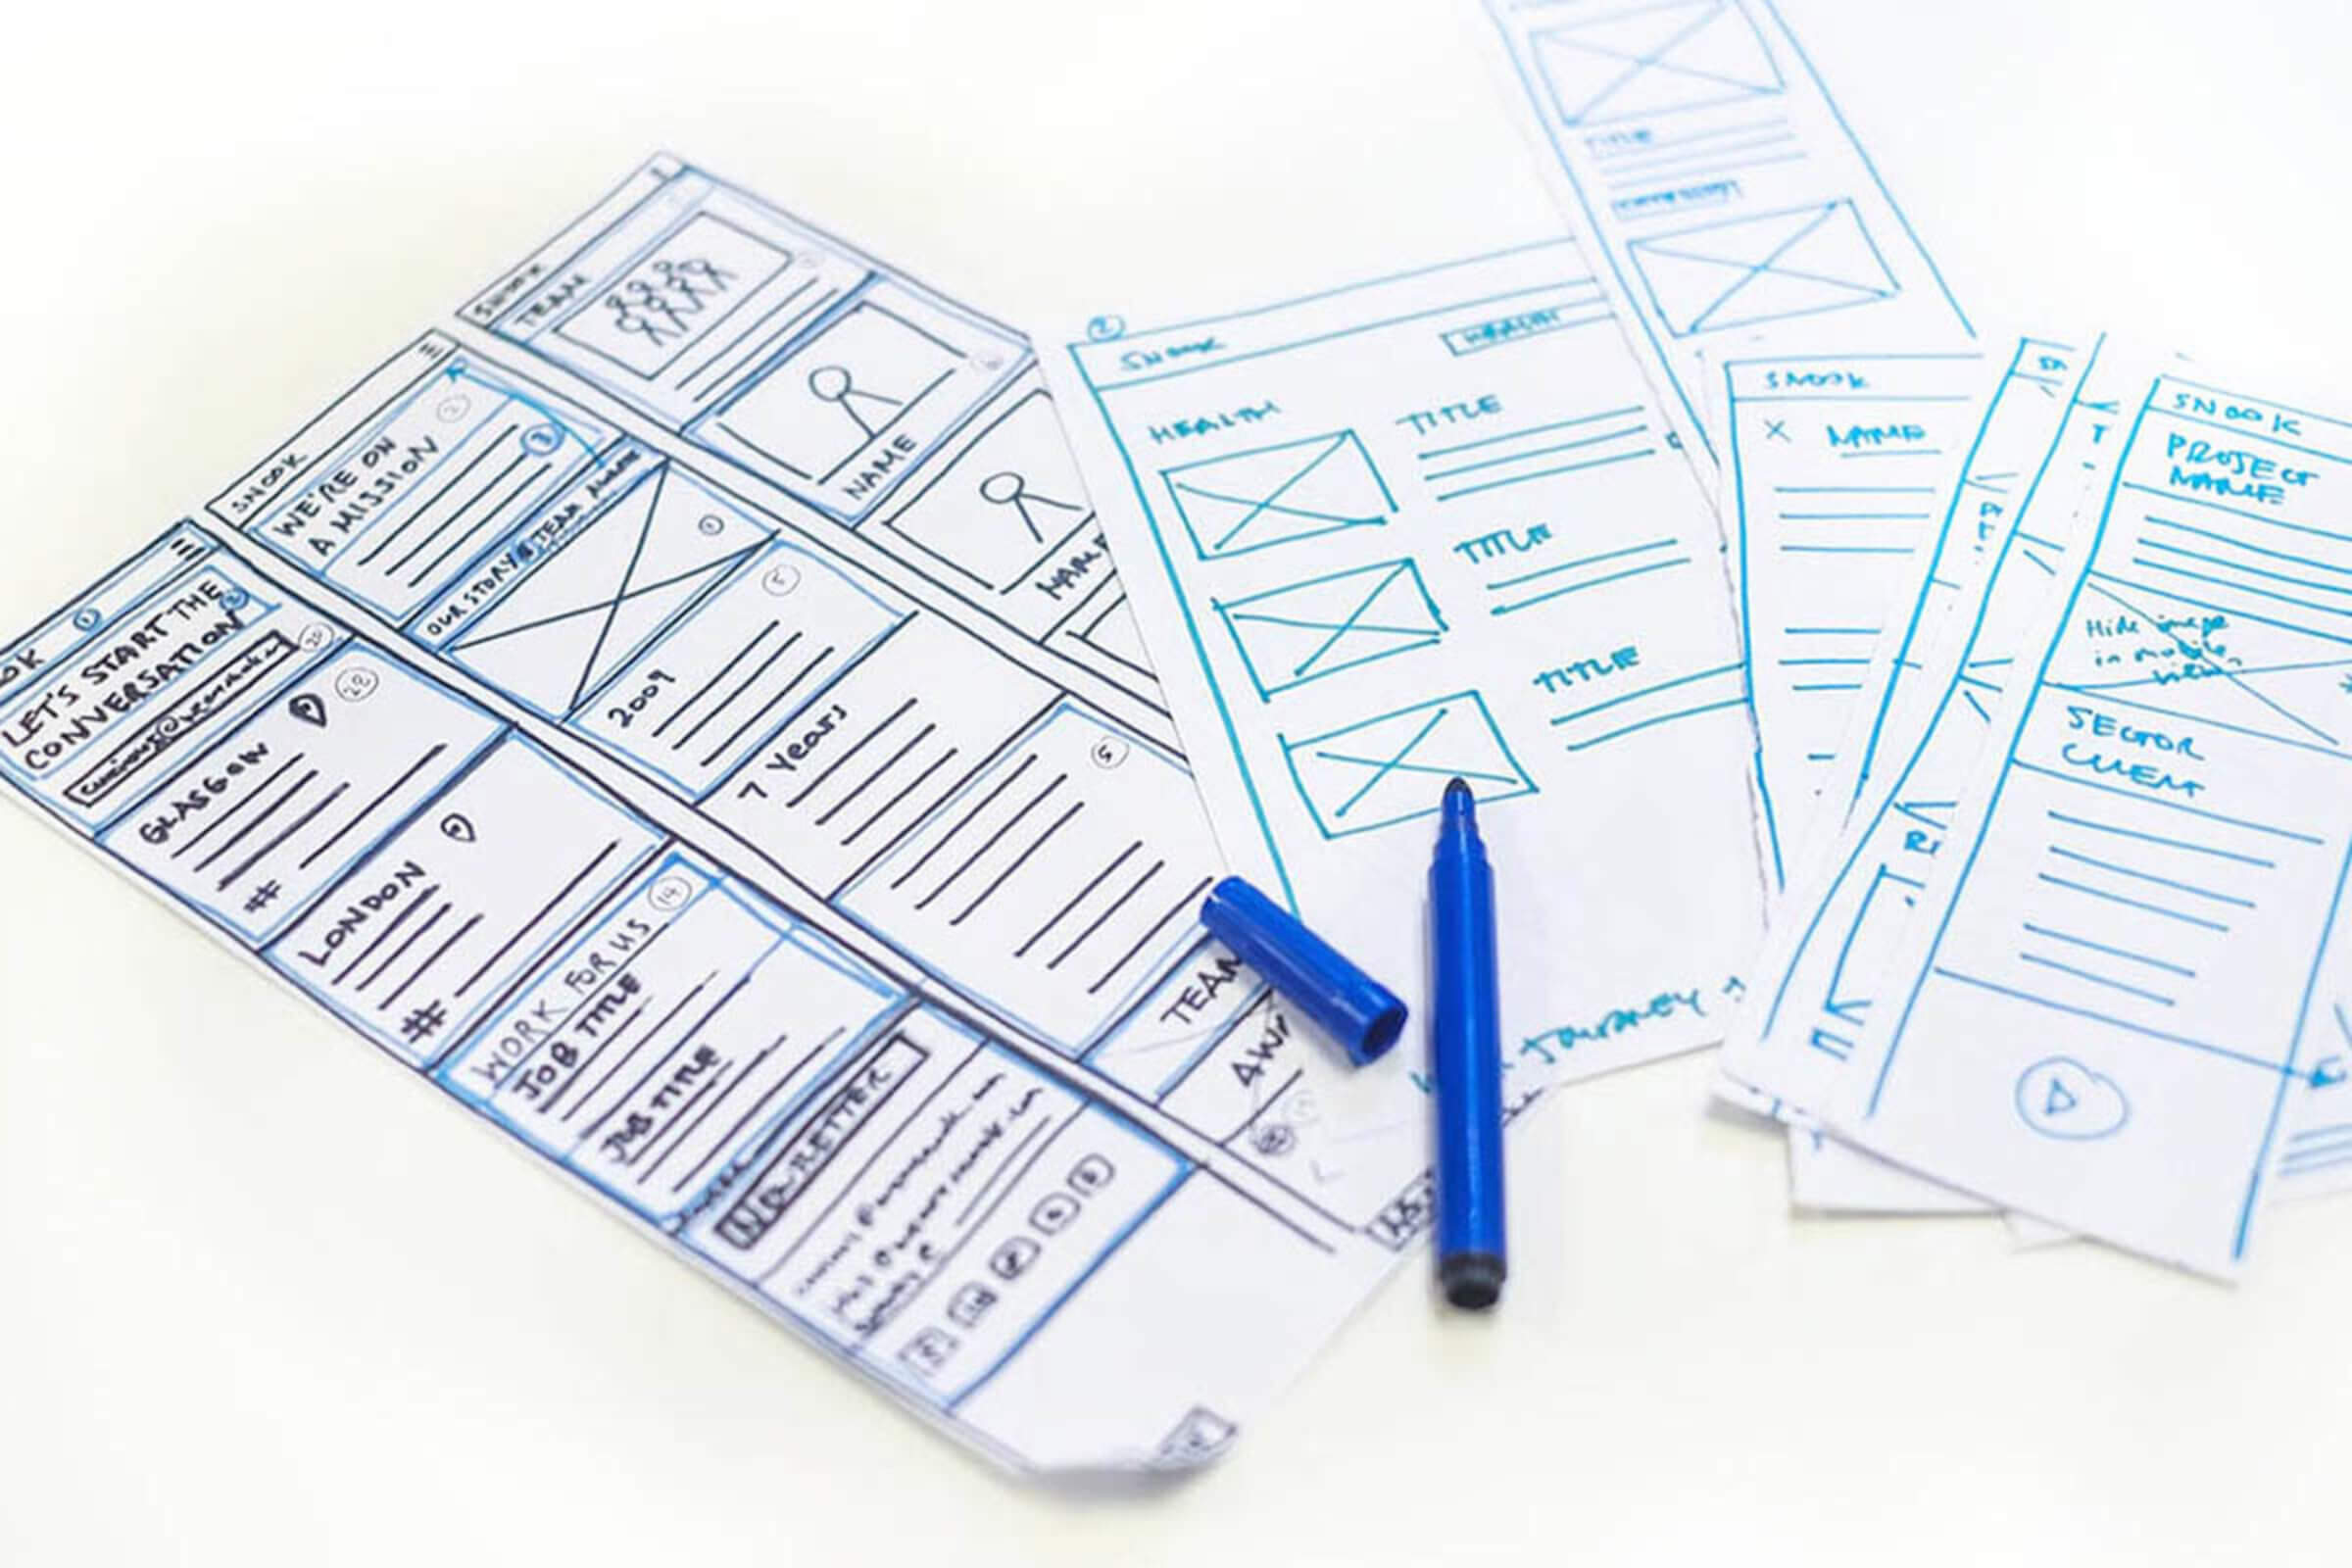 Sketching mobile wireframes